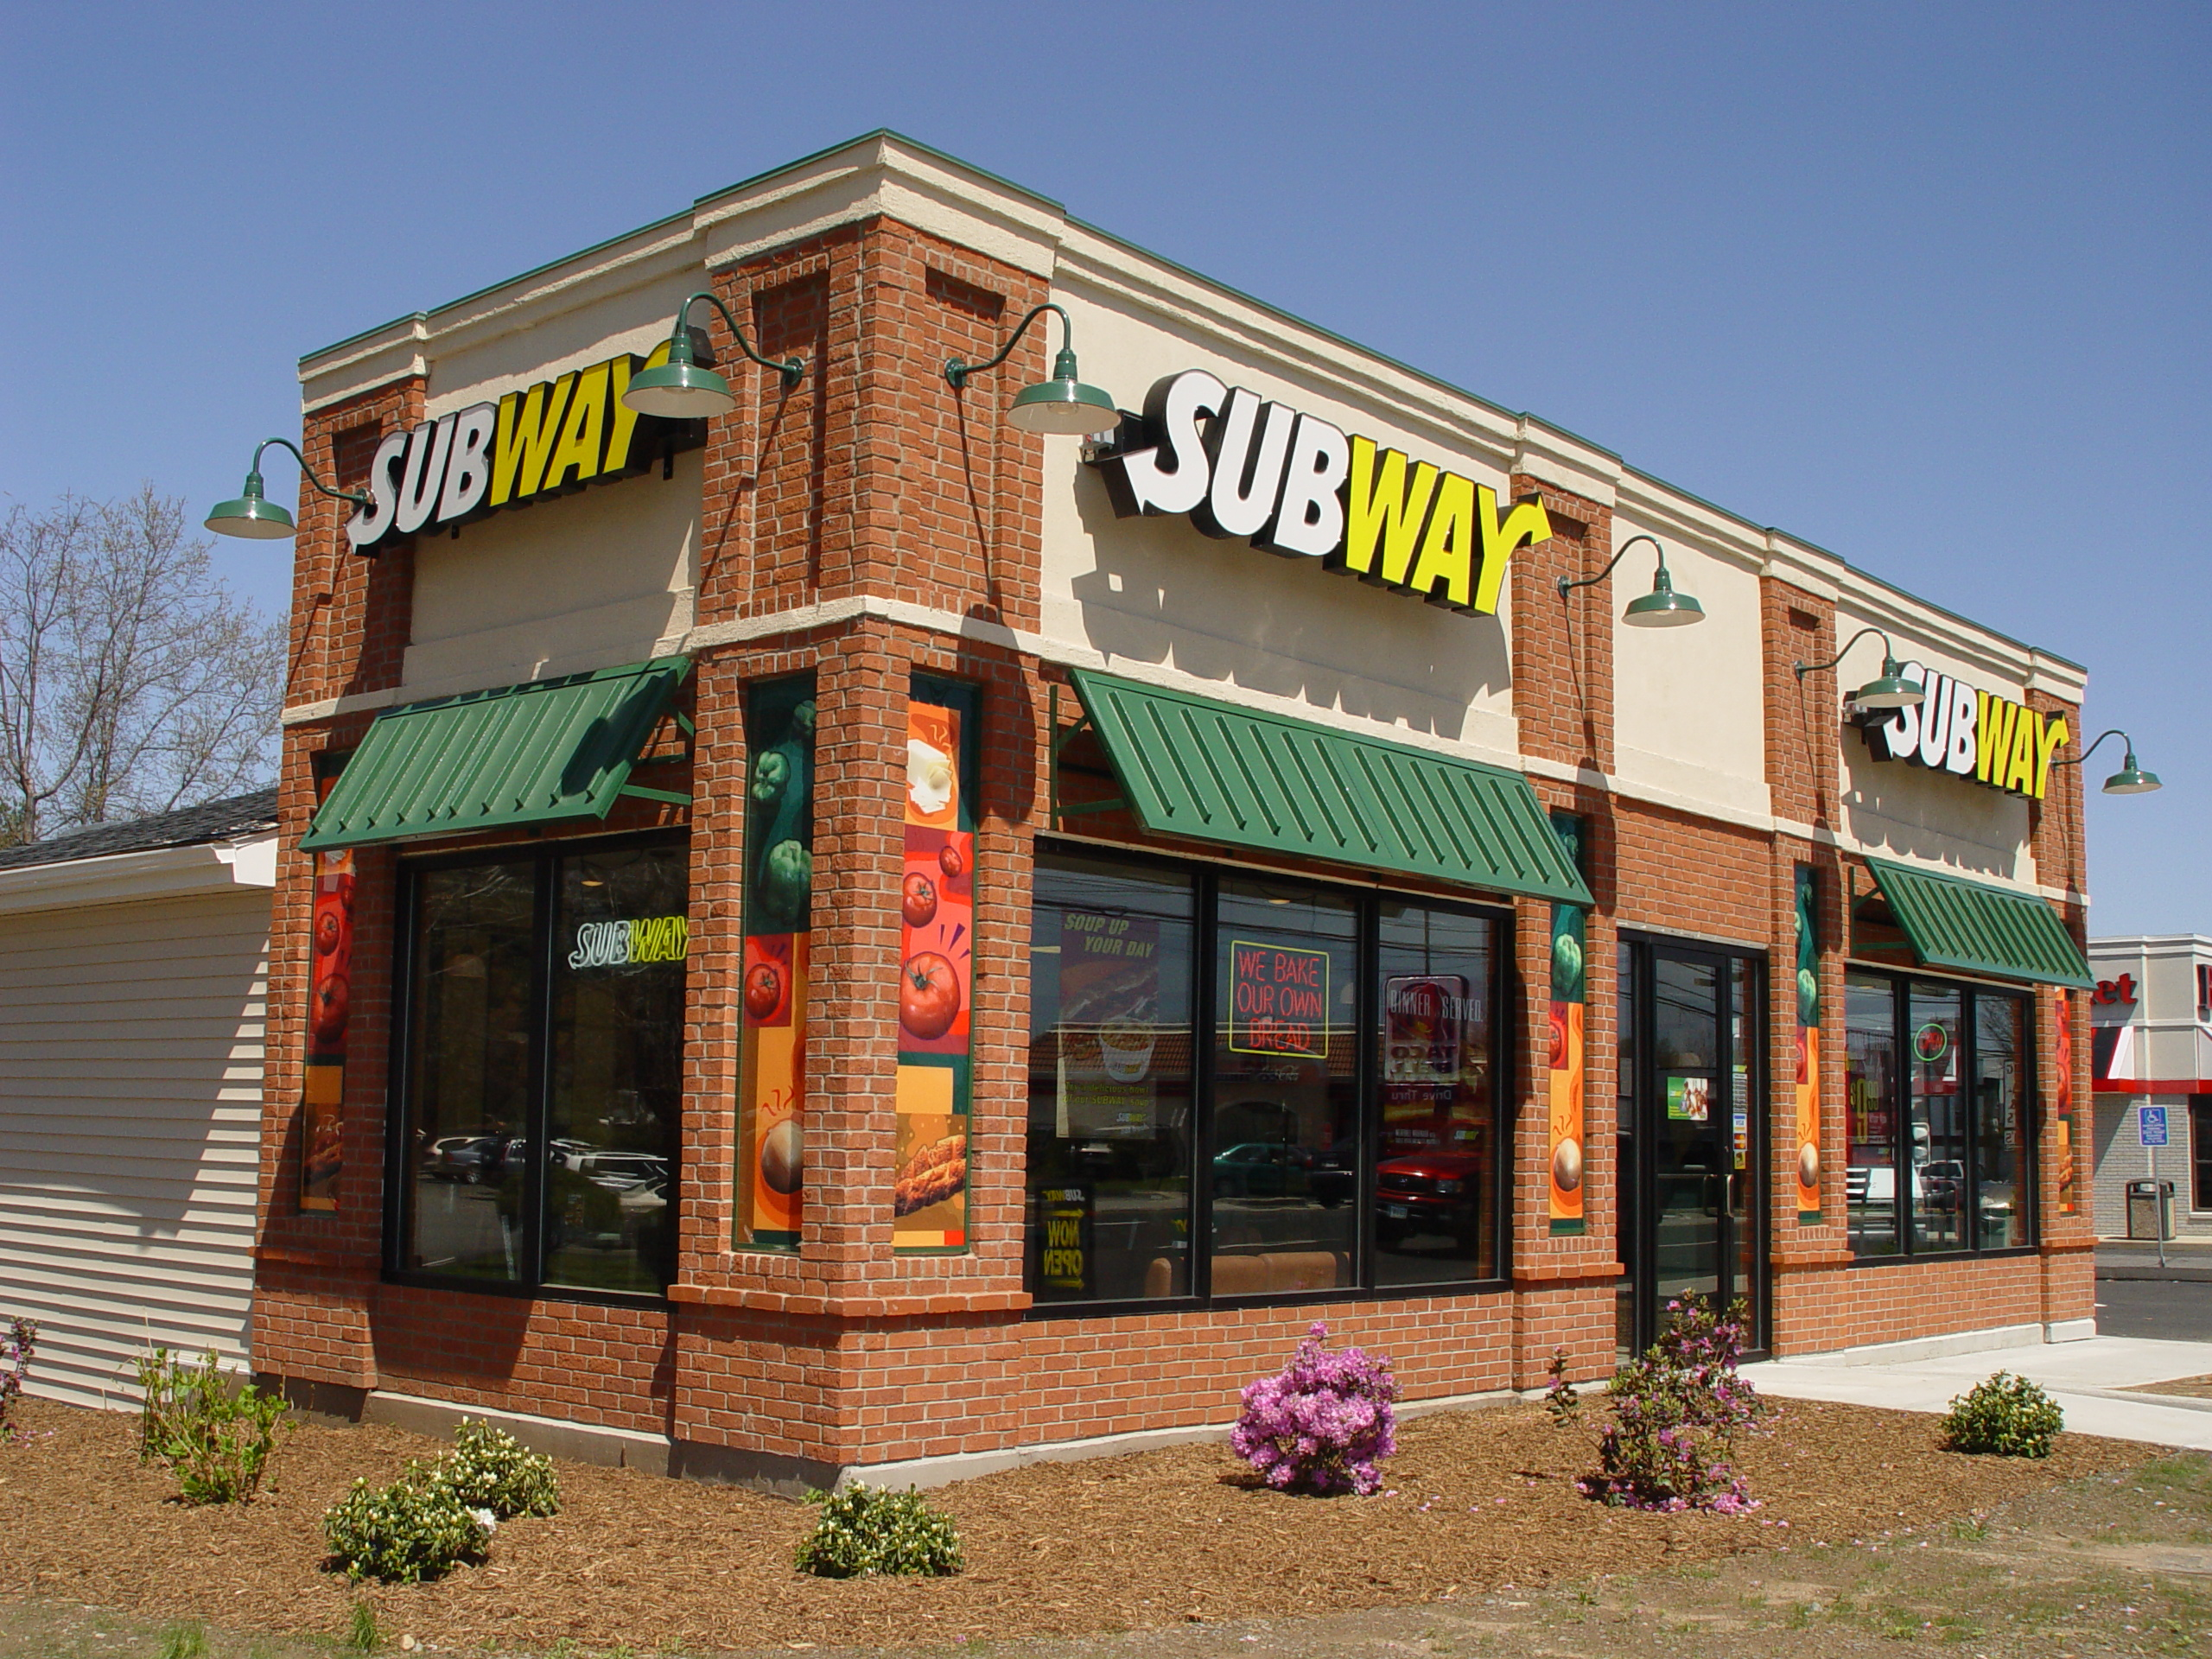 Subway, Geismar LA